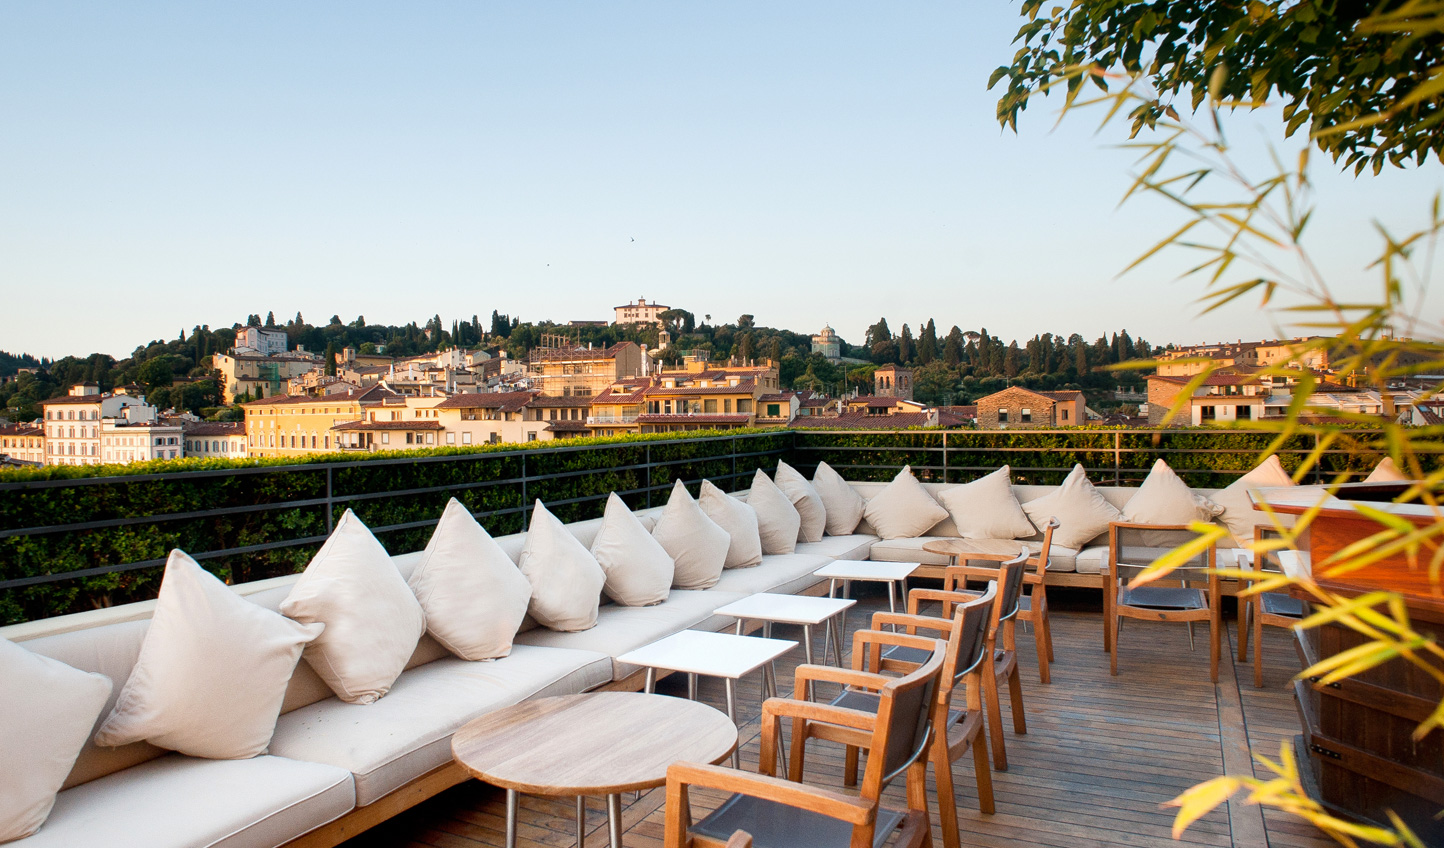 Enjoy views over Florence from the rooftop bar at La Terraza